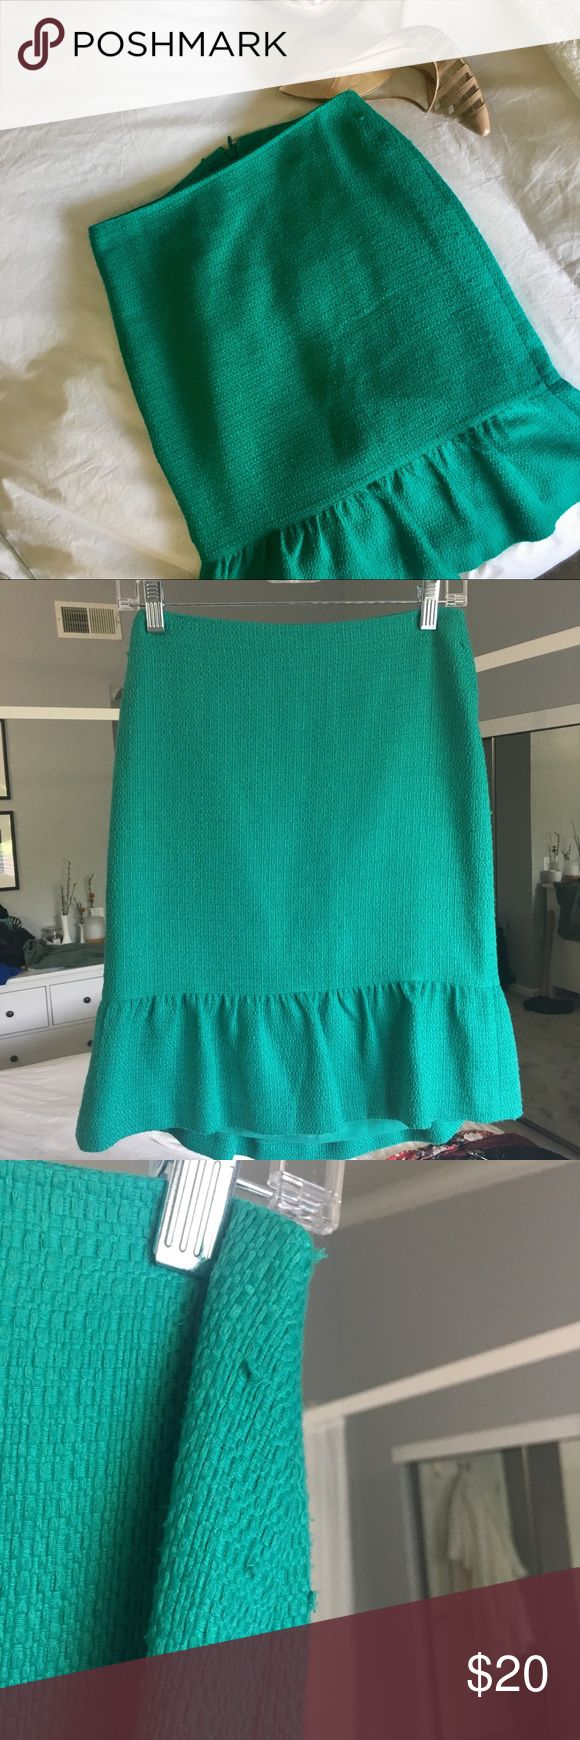 Ann Taylor size 0 teal skirt with ruffle Spring is around the corner! Beautiful teal skirt. Has a few snags/defects. Look at pictures carefully. Other than that, it's in great shape. Ann Taylor Skirts Pencil